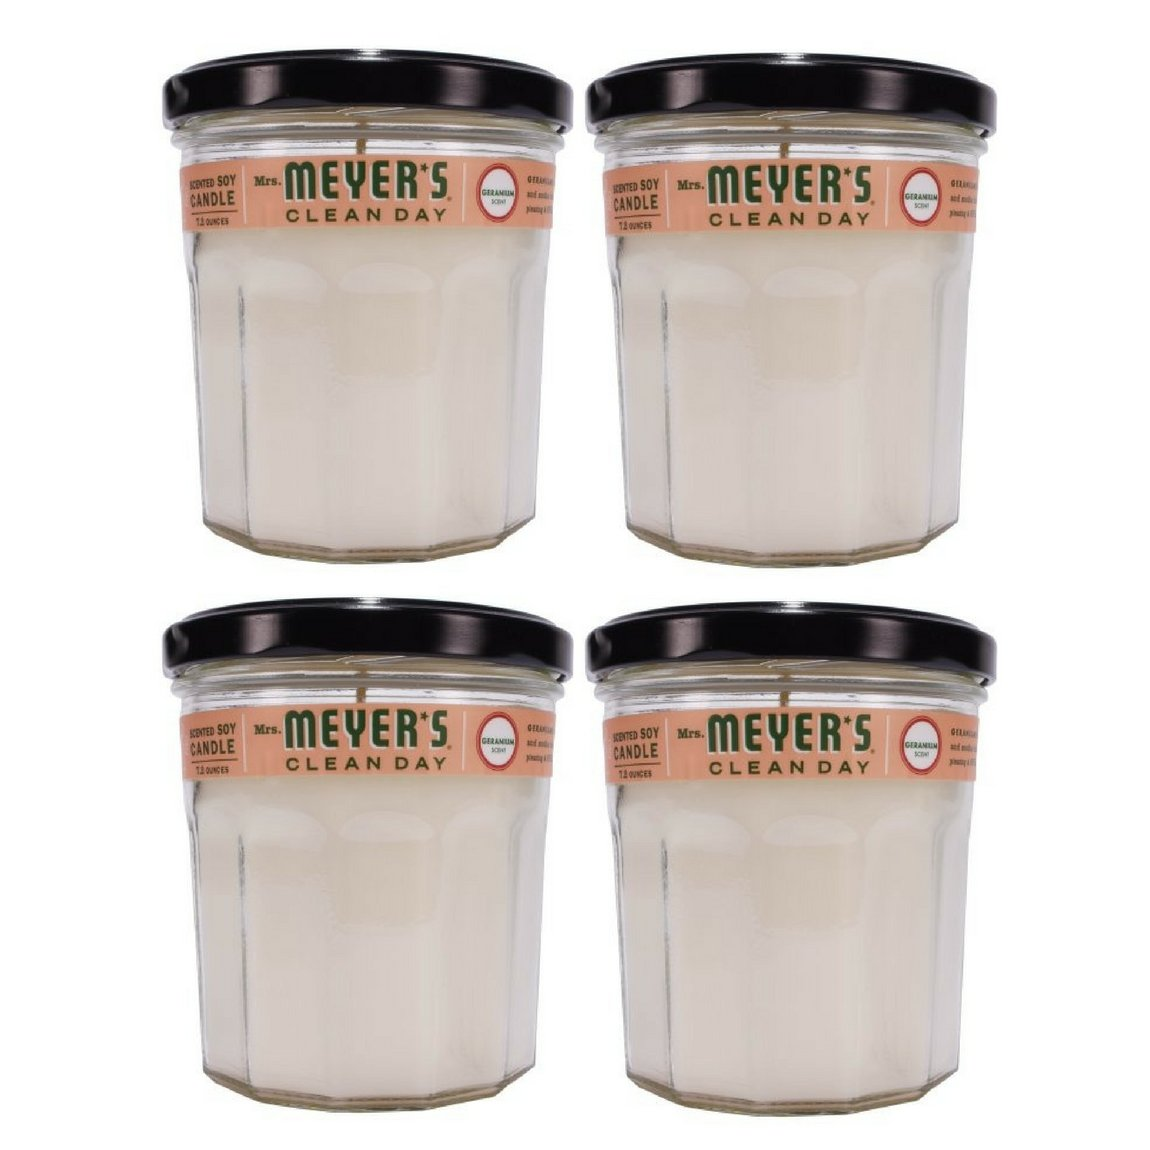 Mrs. Meyer's Clean Day Scented Soy Candle, Large Glass, Geranium, 7.2 oz - 4 Packs